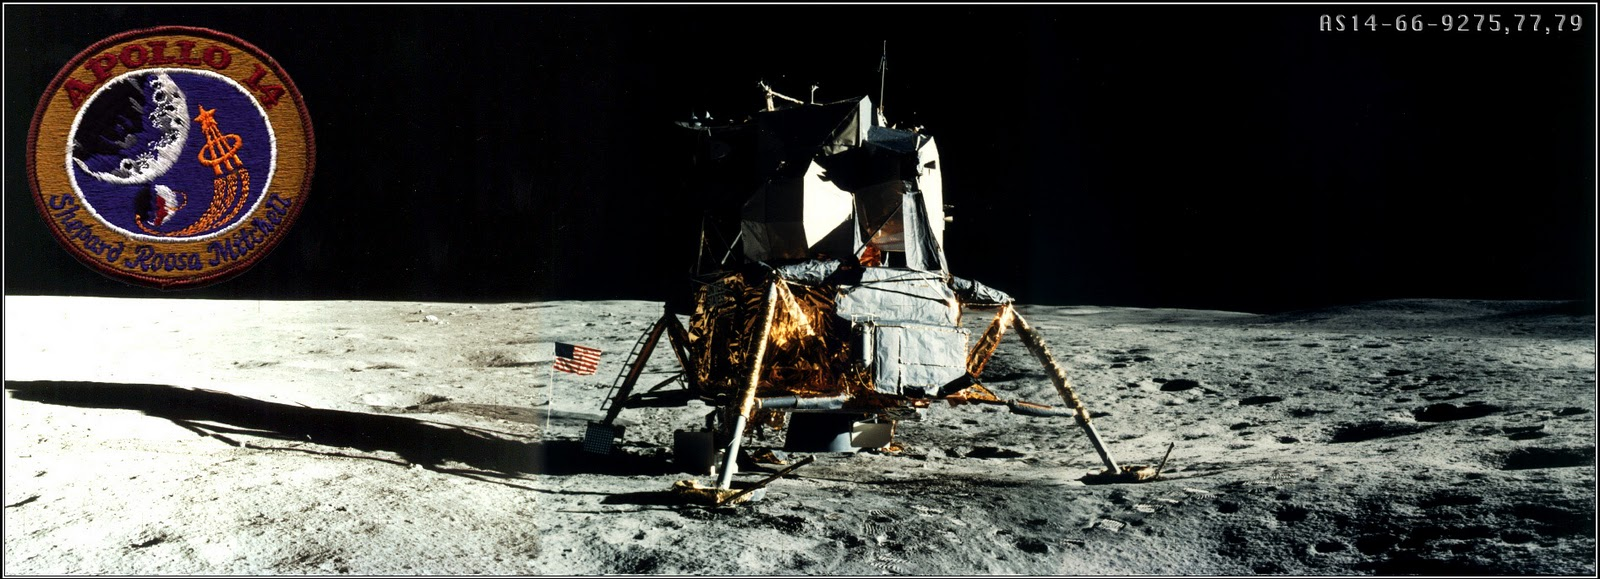 apollo 14 lunar module - photo #12